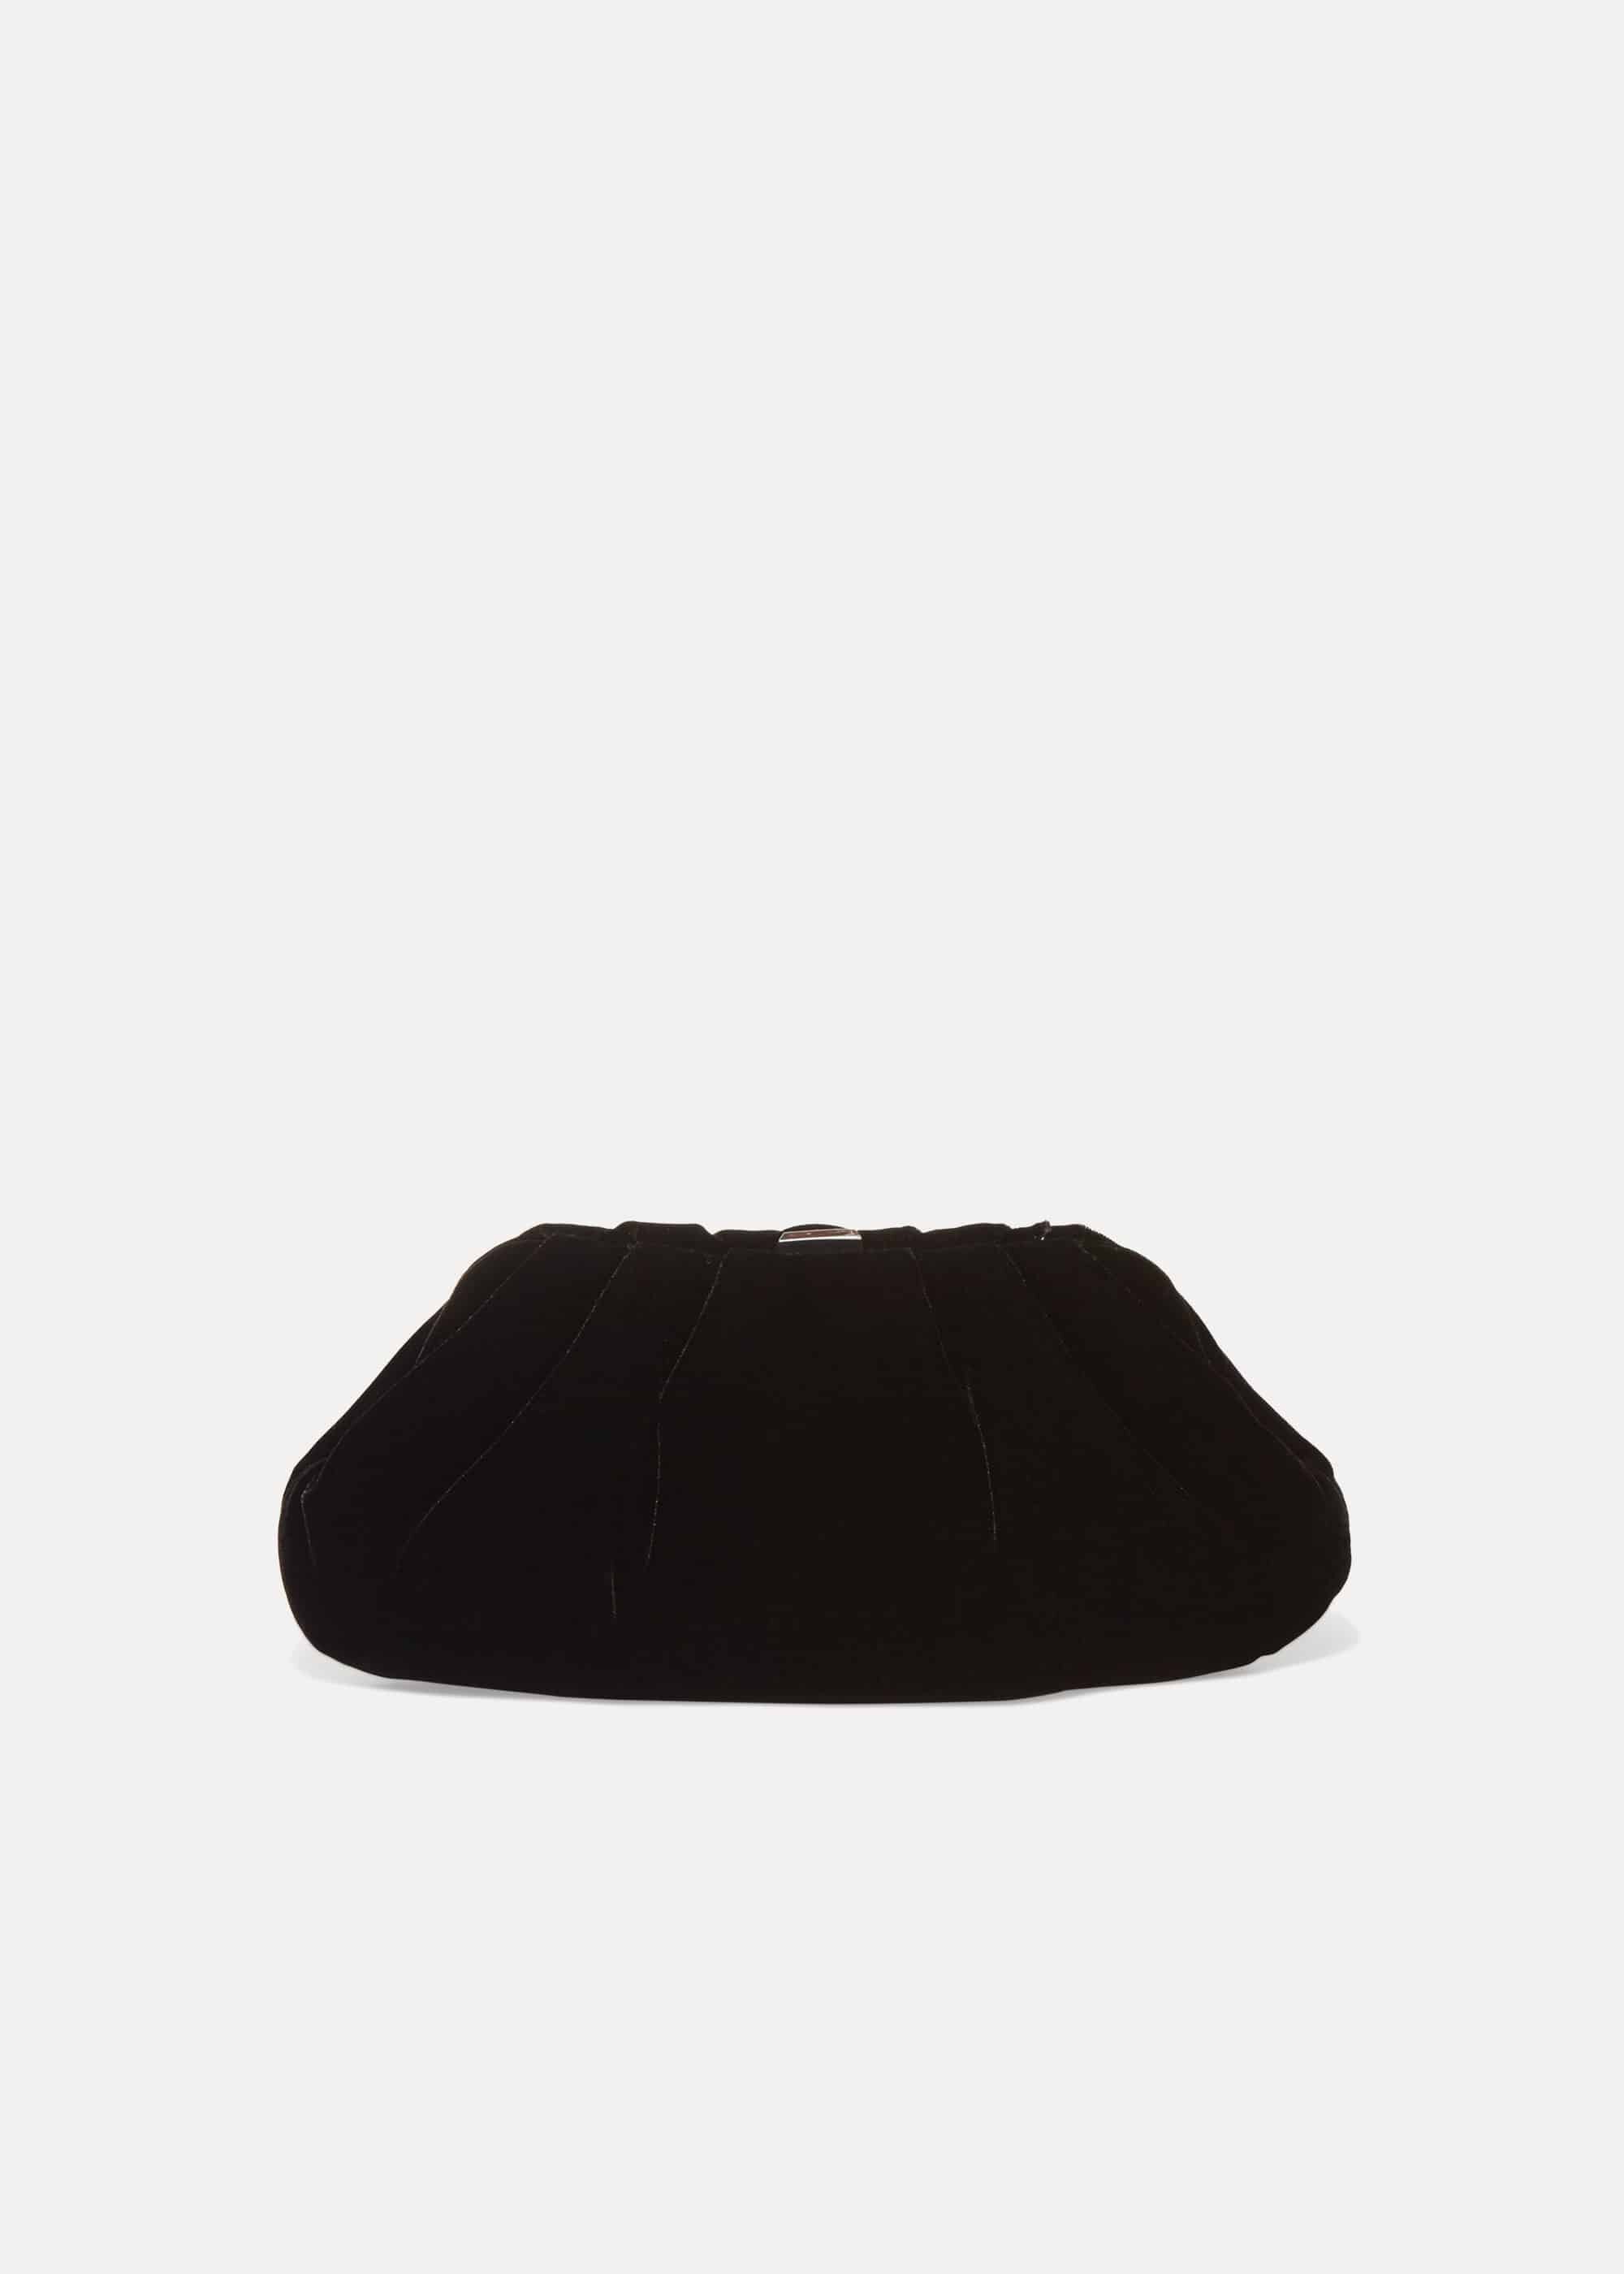 Phase Eight Valerie Velvet Clutch Bag, Black, Bag